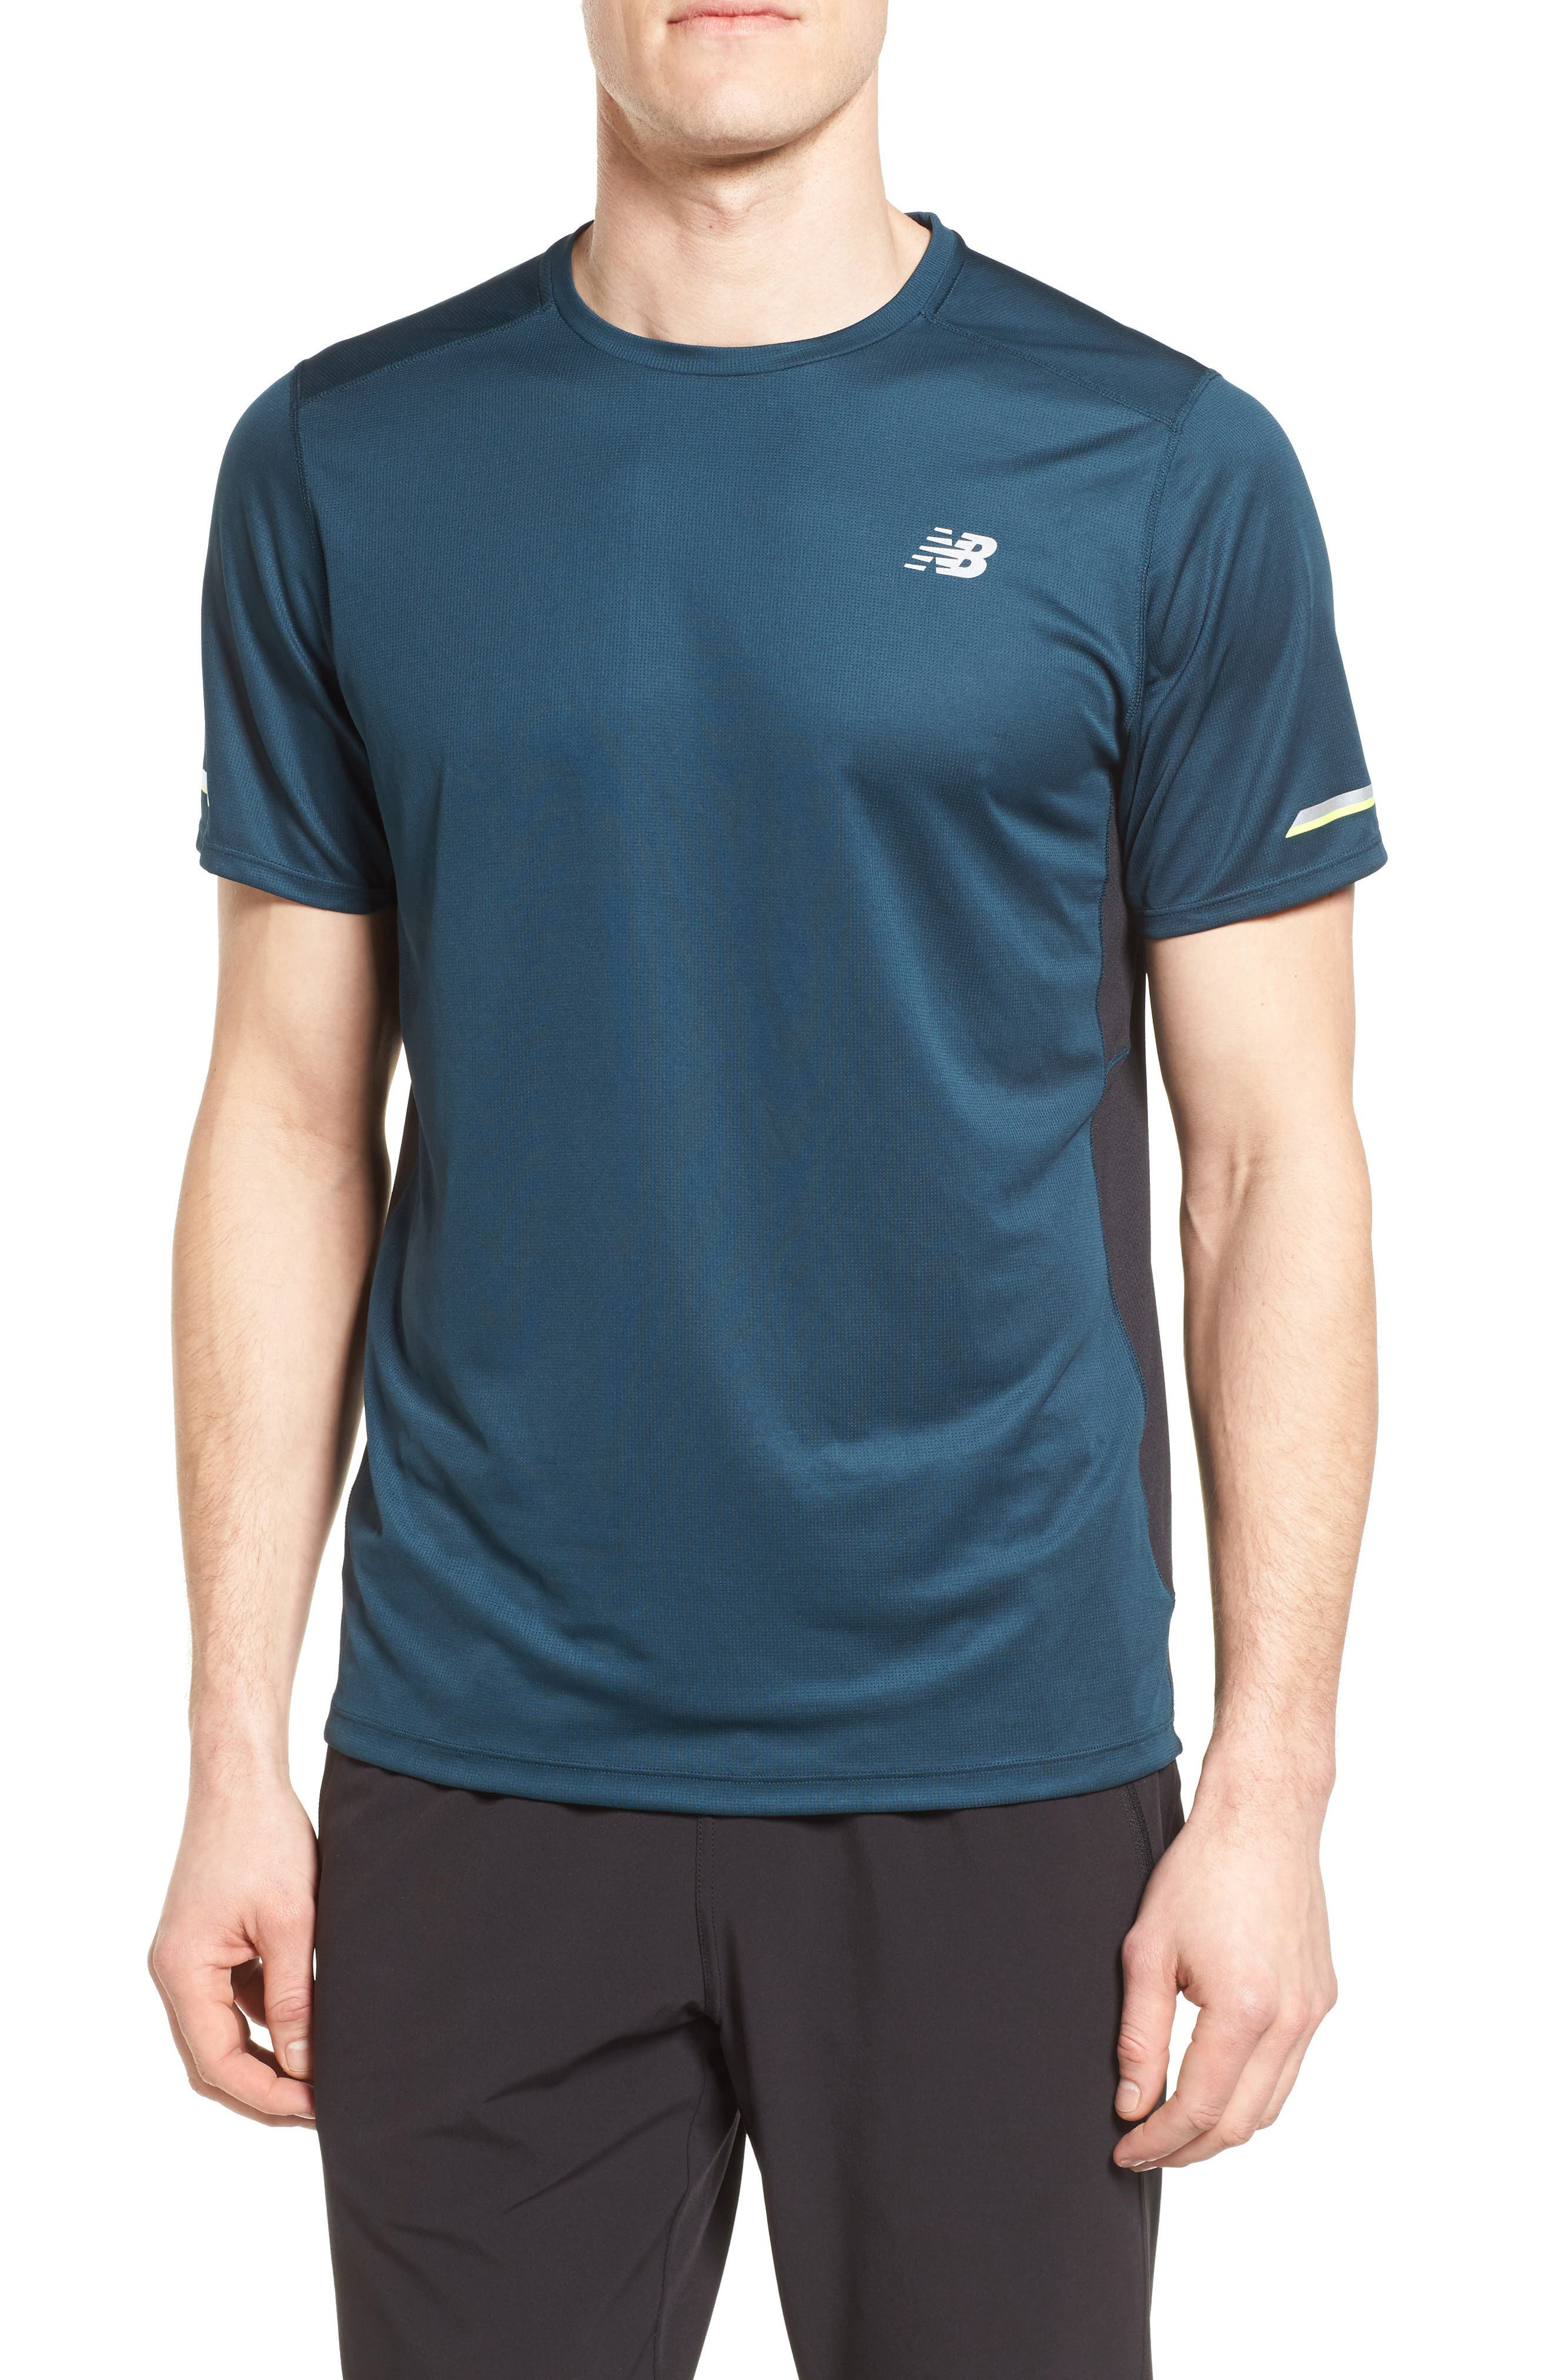 NEW BALANCE 'Ice' Athletic Training Shirt